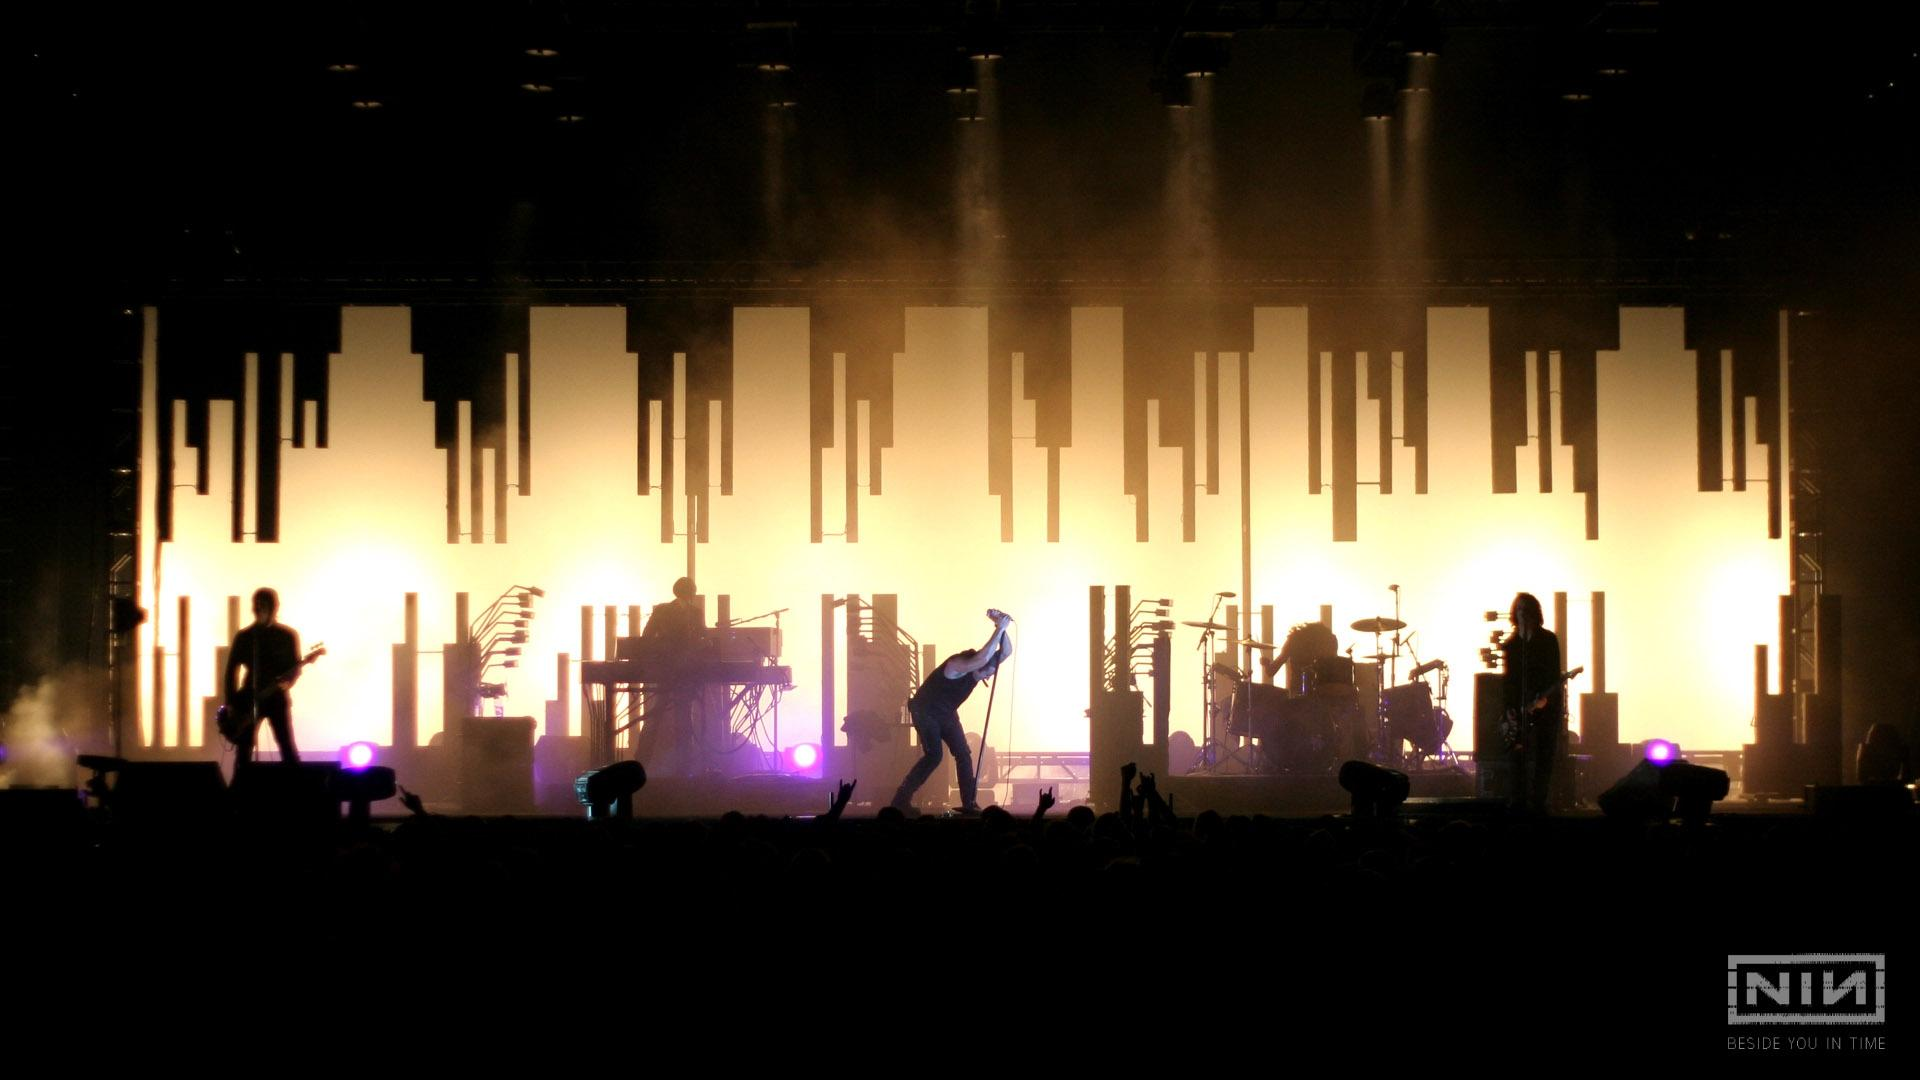 Download Concert Stage Wallpaper Hd Backgrounds Download